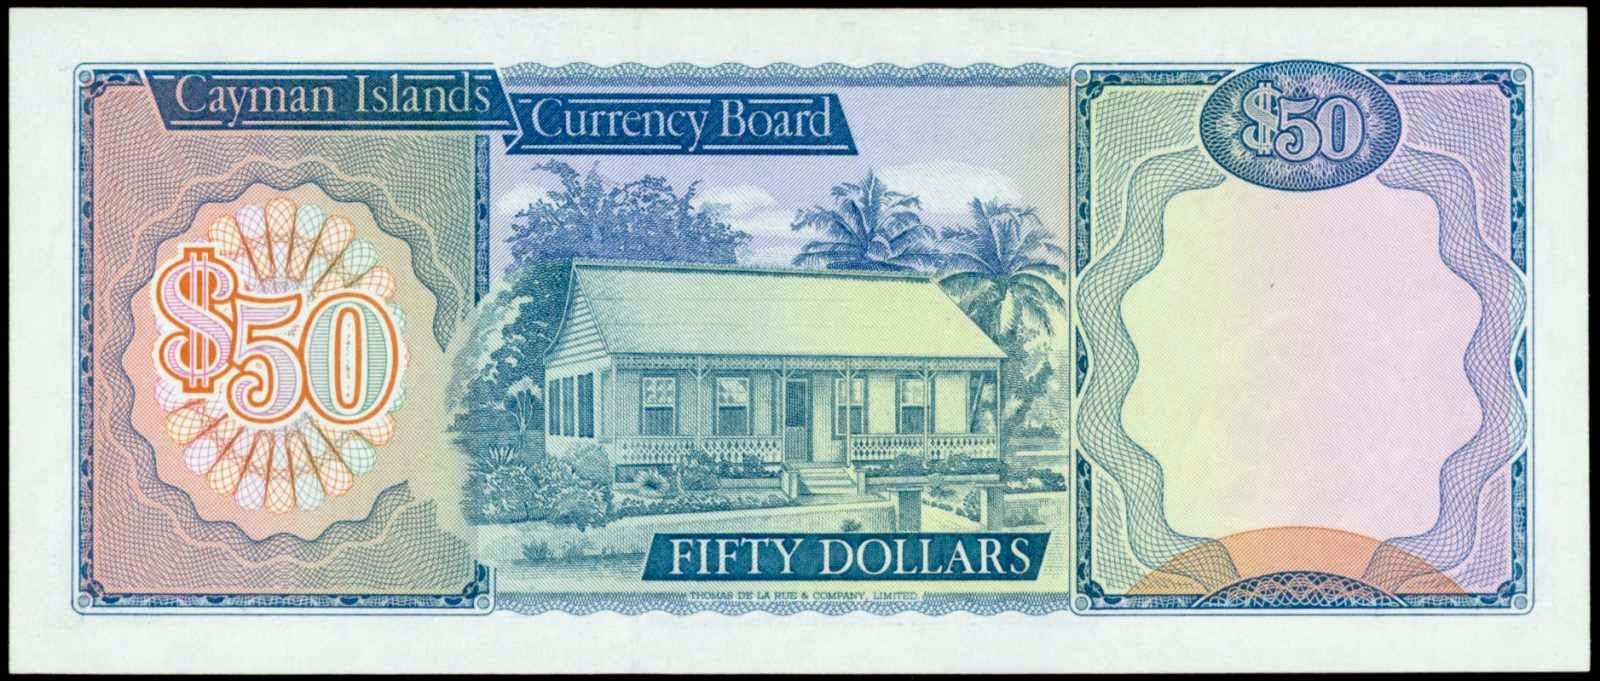 Cayman Islands paper money currency 50 Dollars bank note 1974